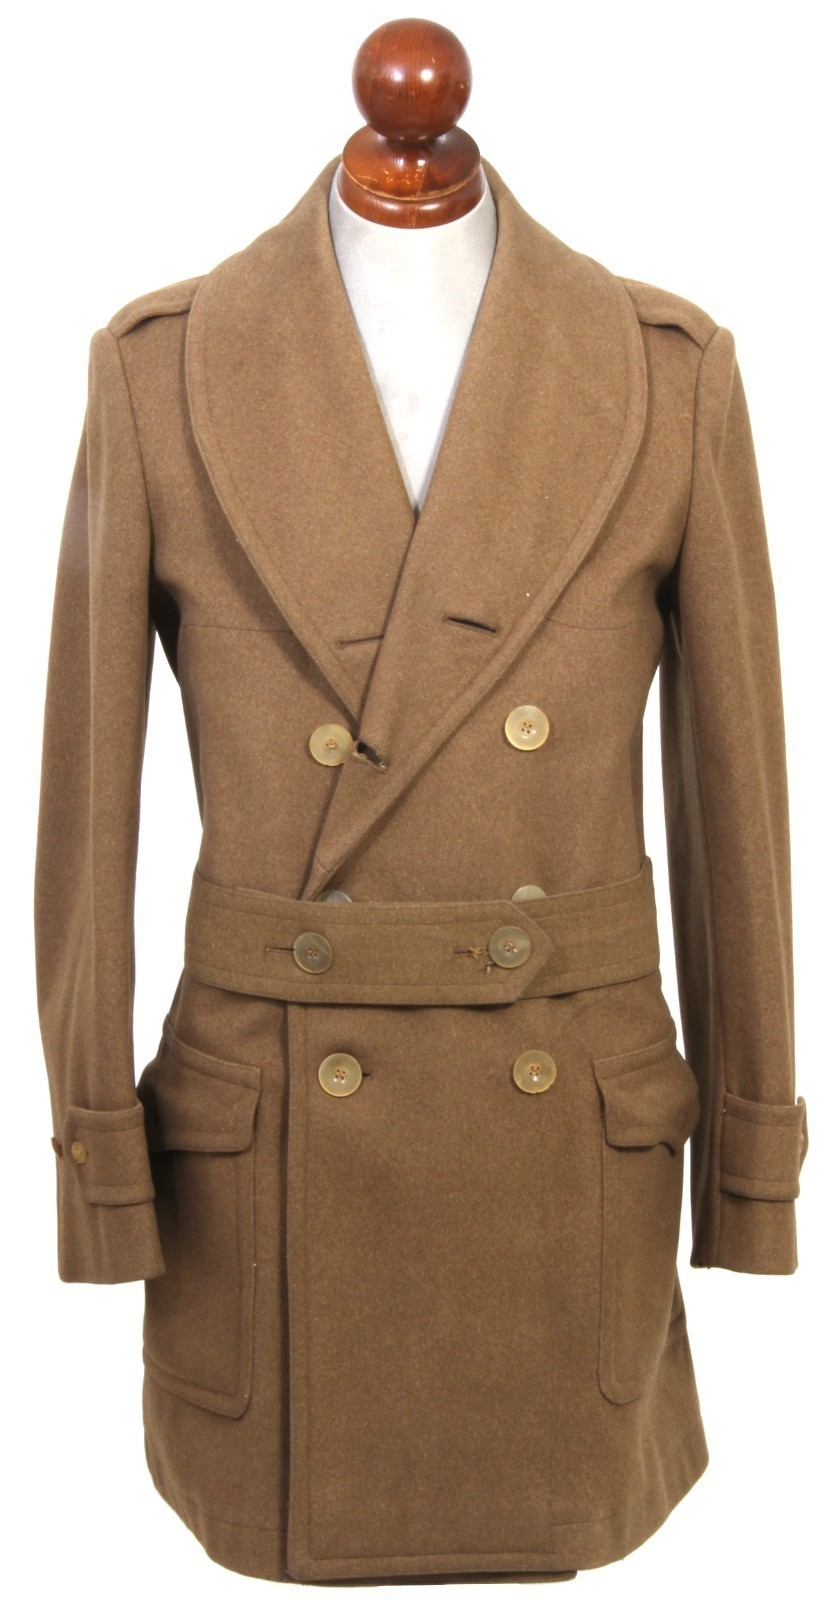 ShawlCollar  It's on E-Bay a fantastic pre-war (1926) unlined military coat, if your a size 38, and need a cold weather coat…